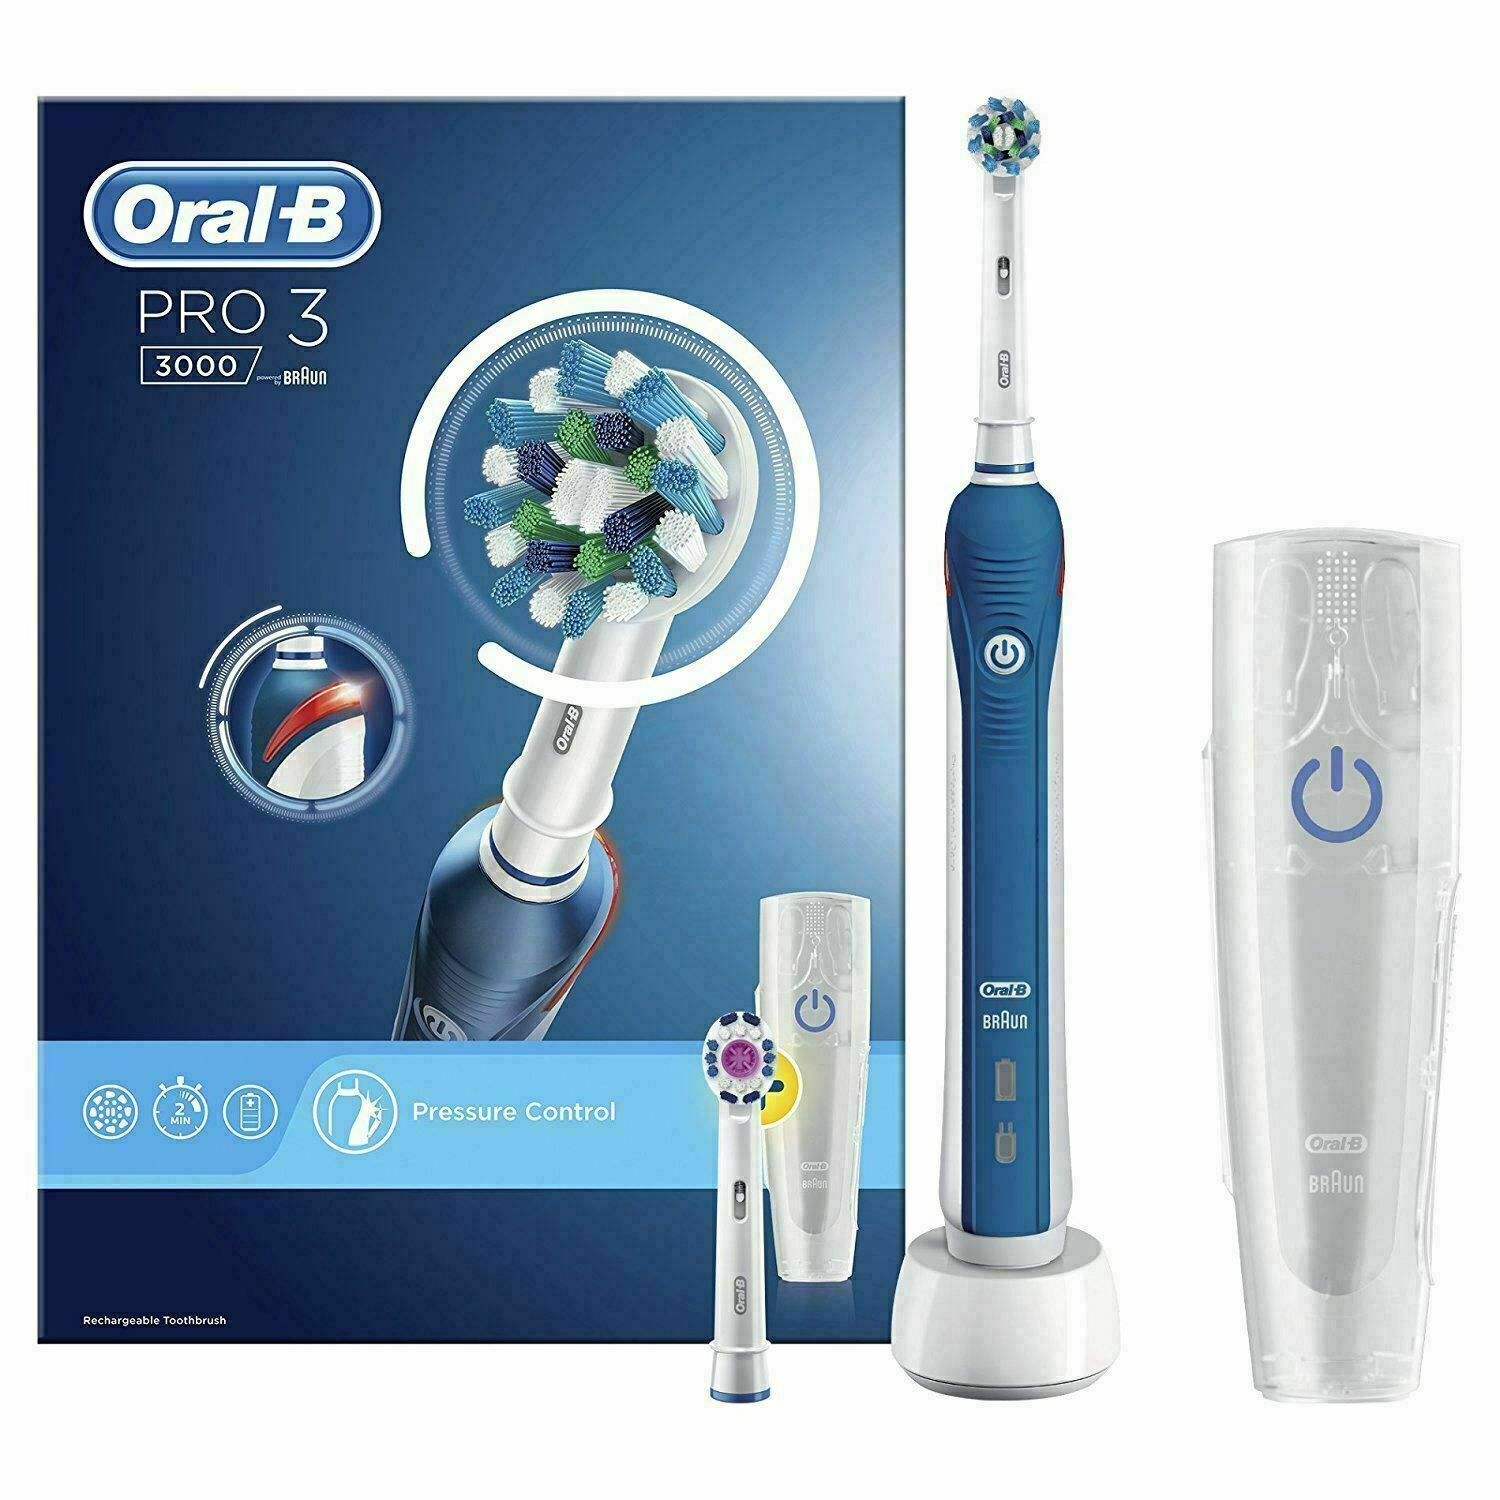 Oral-B Pro 3000 CrossAction Rechargeable Electric Toothbrush Pressure Control